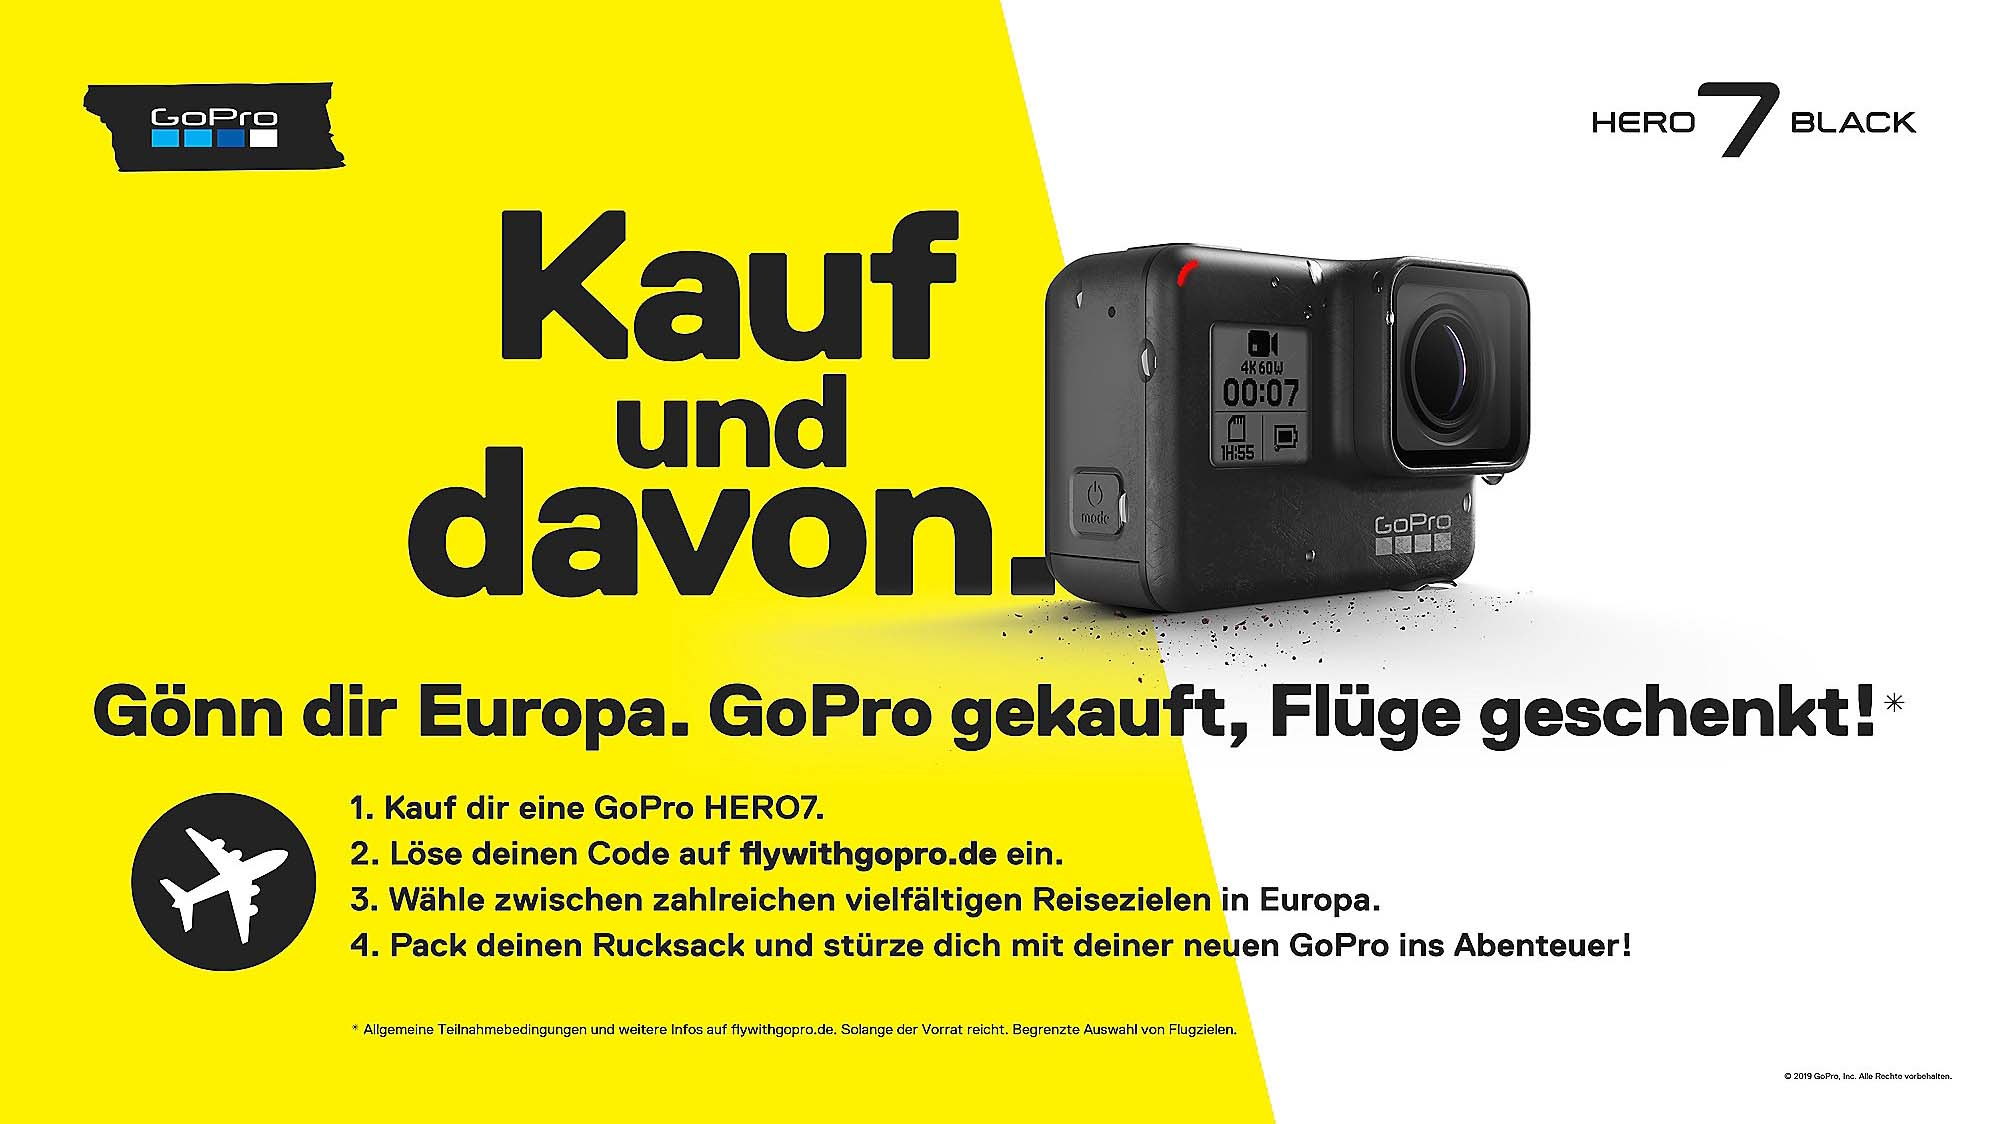 An ad for GoPro Germany displaying a free adventure trip sales promotion